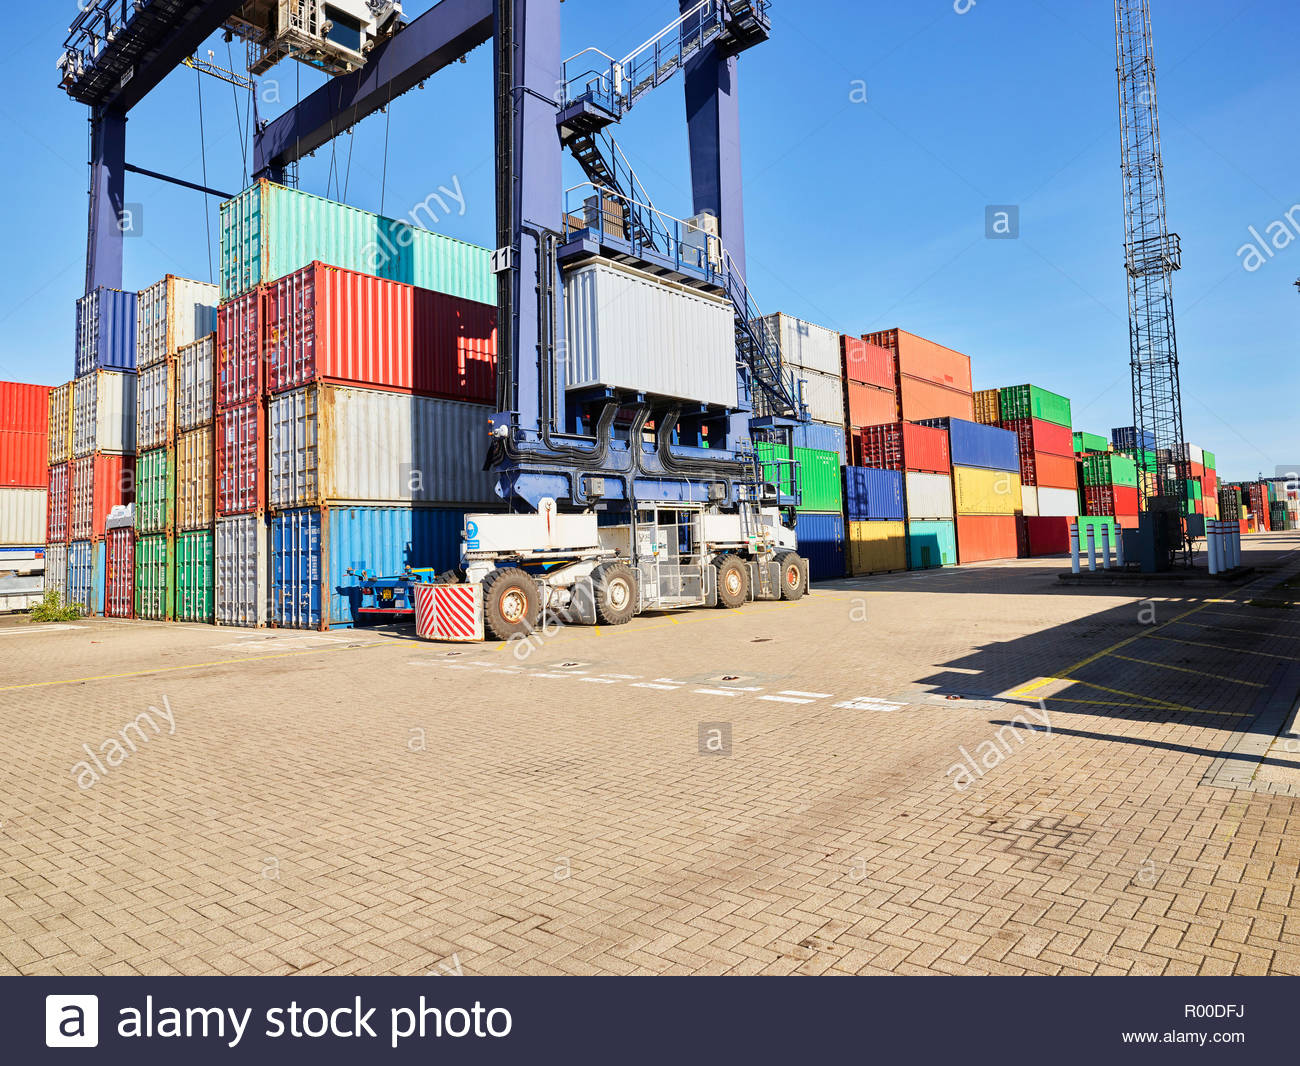 Crane and stacks of cargo containers at Port of Felixstowe, England - Stock Image